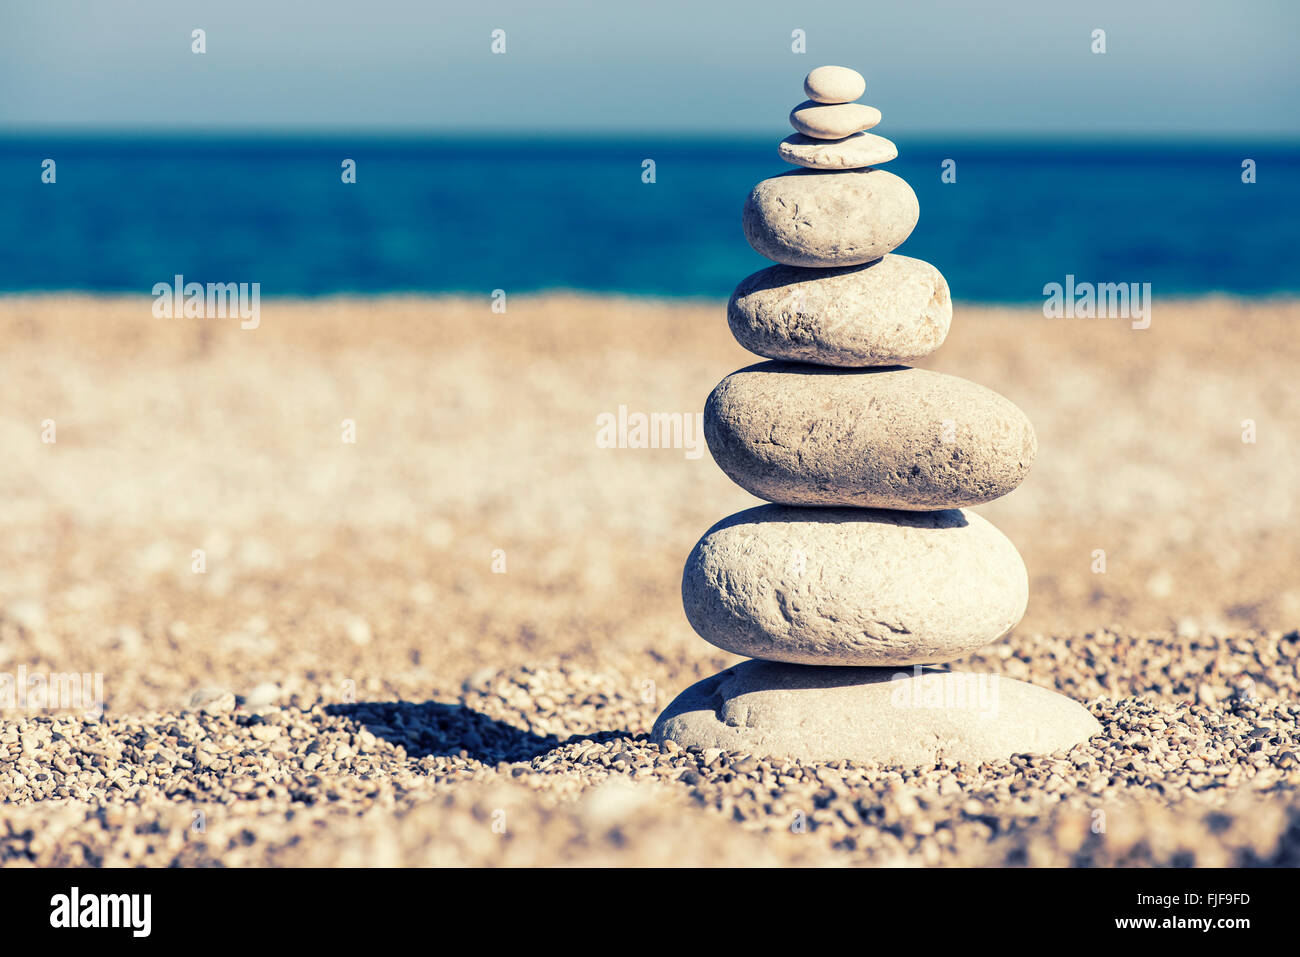 Stones balance, vintage retro instagram like hierarchy stack over blue sea background. Spa or well-being, freedom - Stock Image